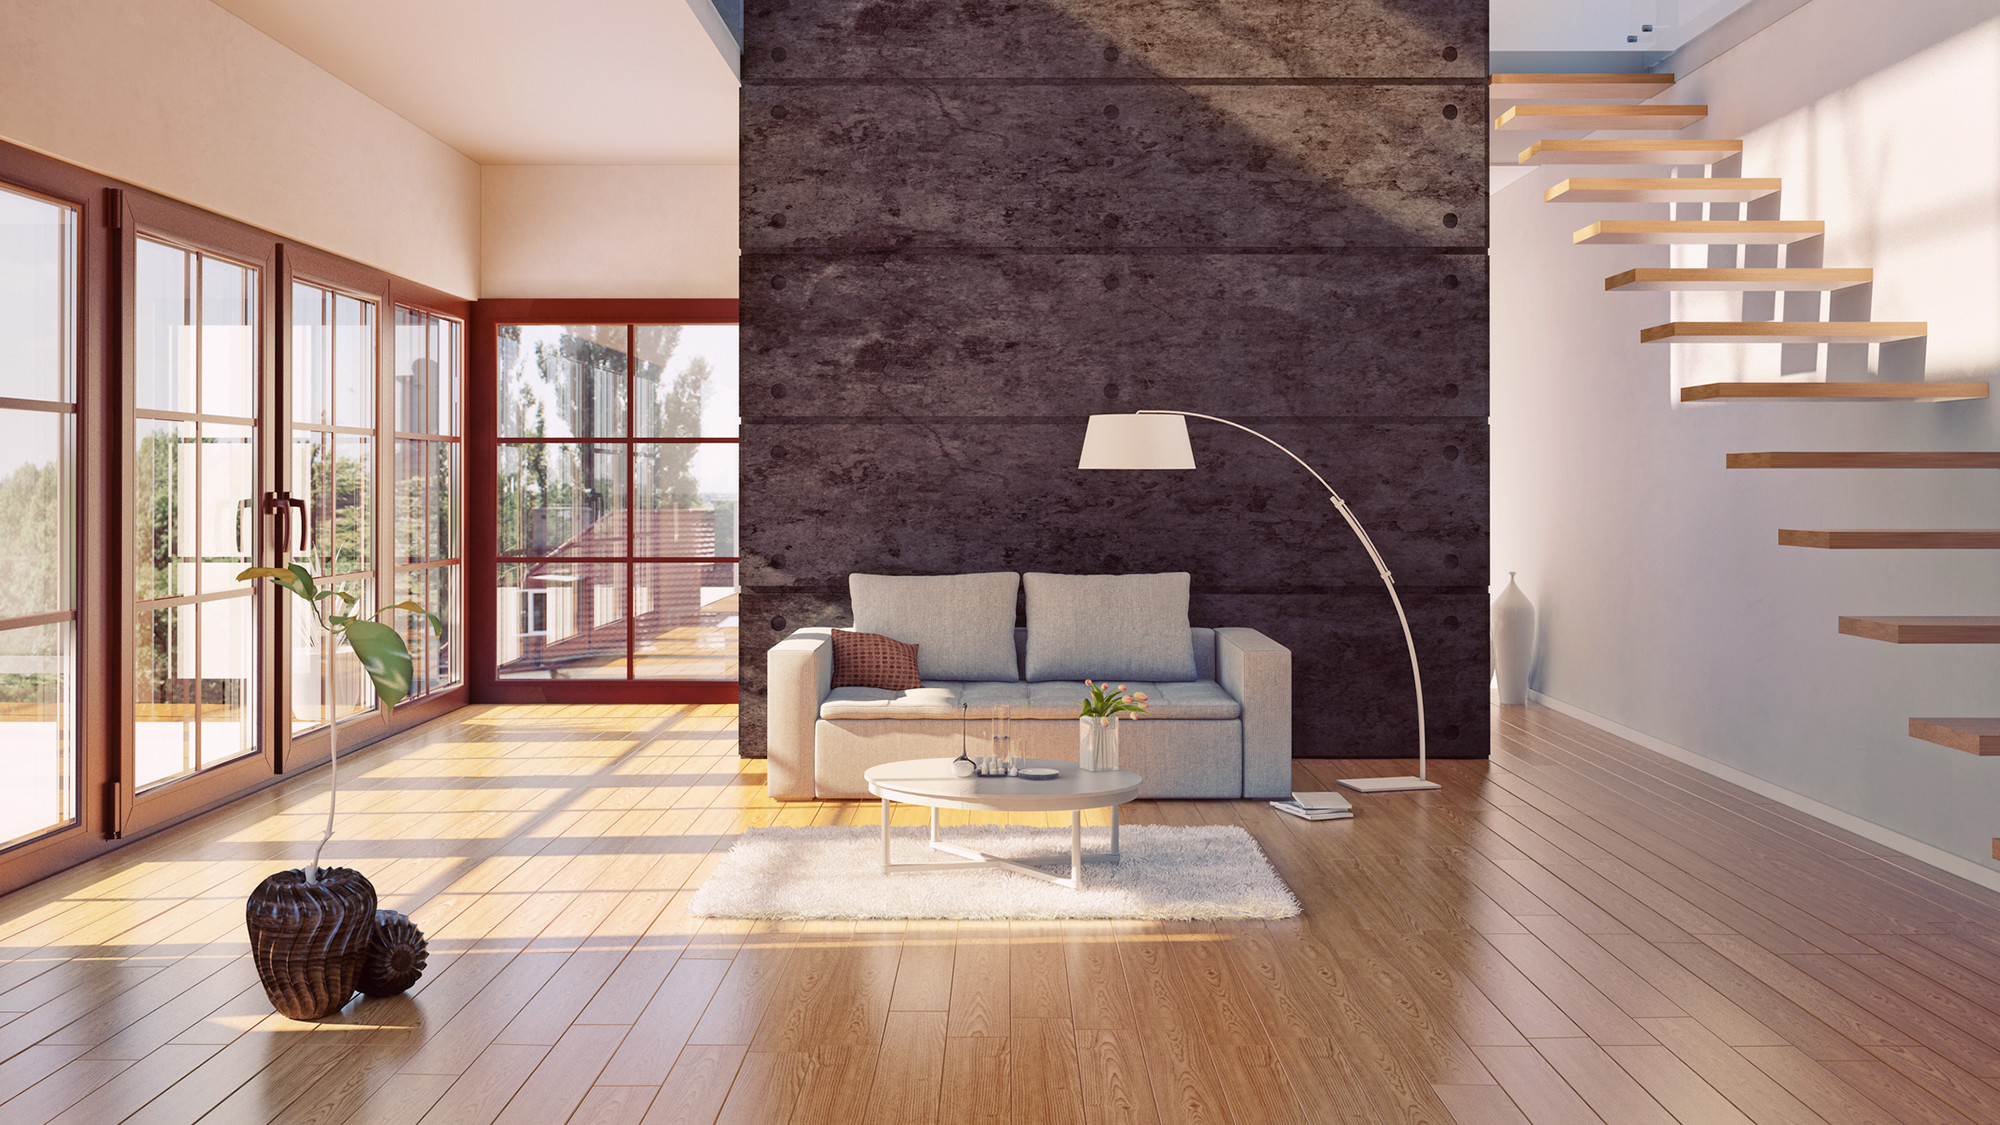 hardwood floor refinishing pinehurst nc of do hardwood floors provide the best return on investment realtor coma with regard to hardwood floors investment